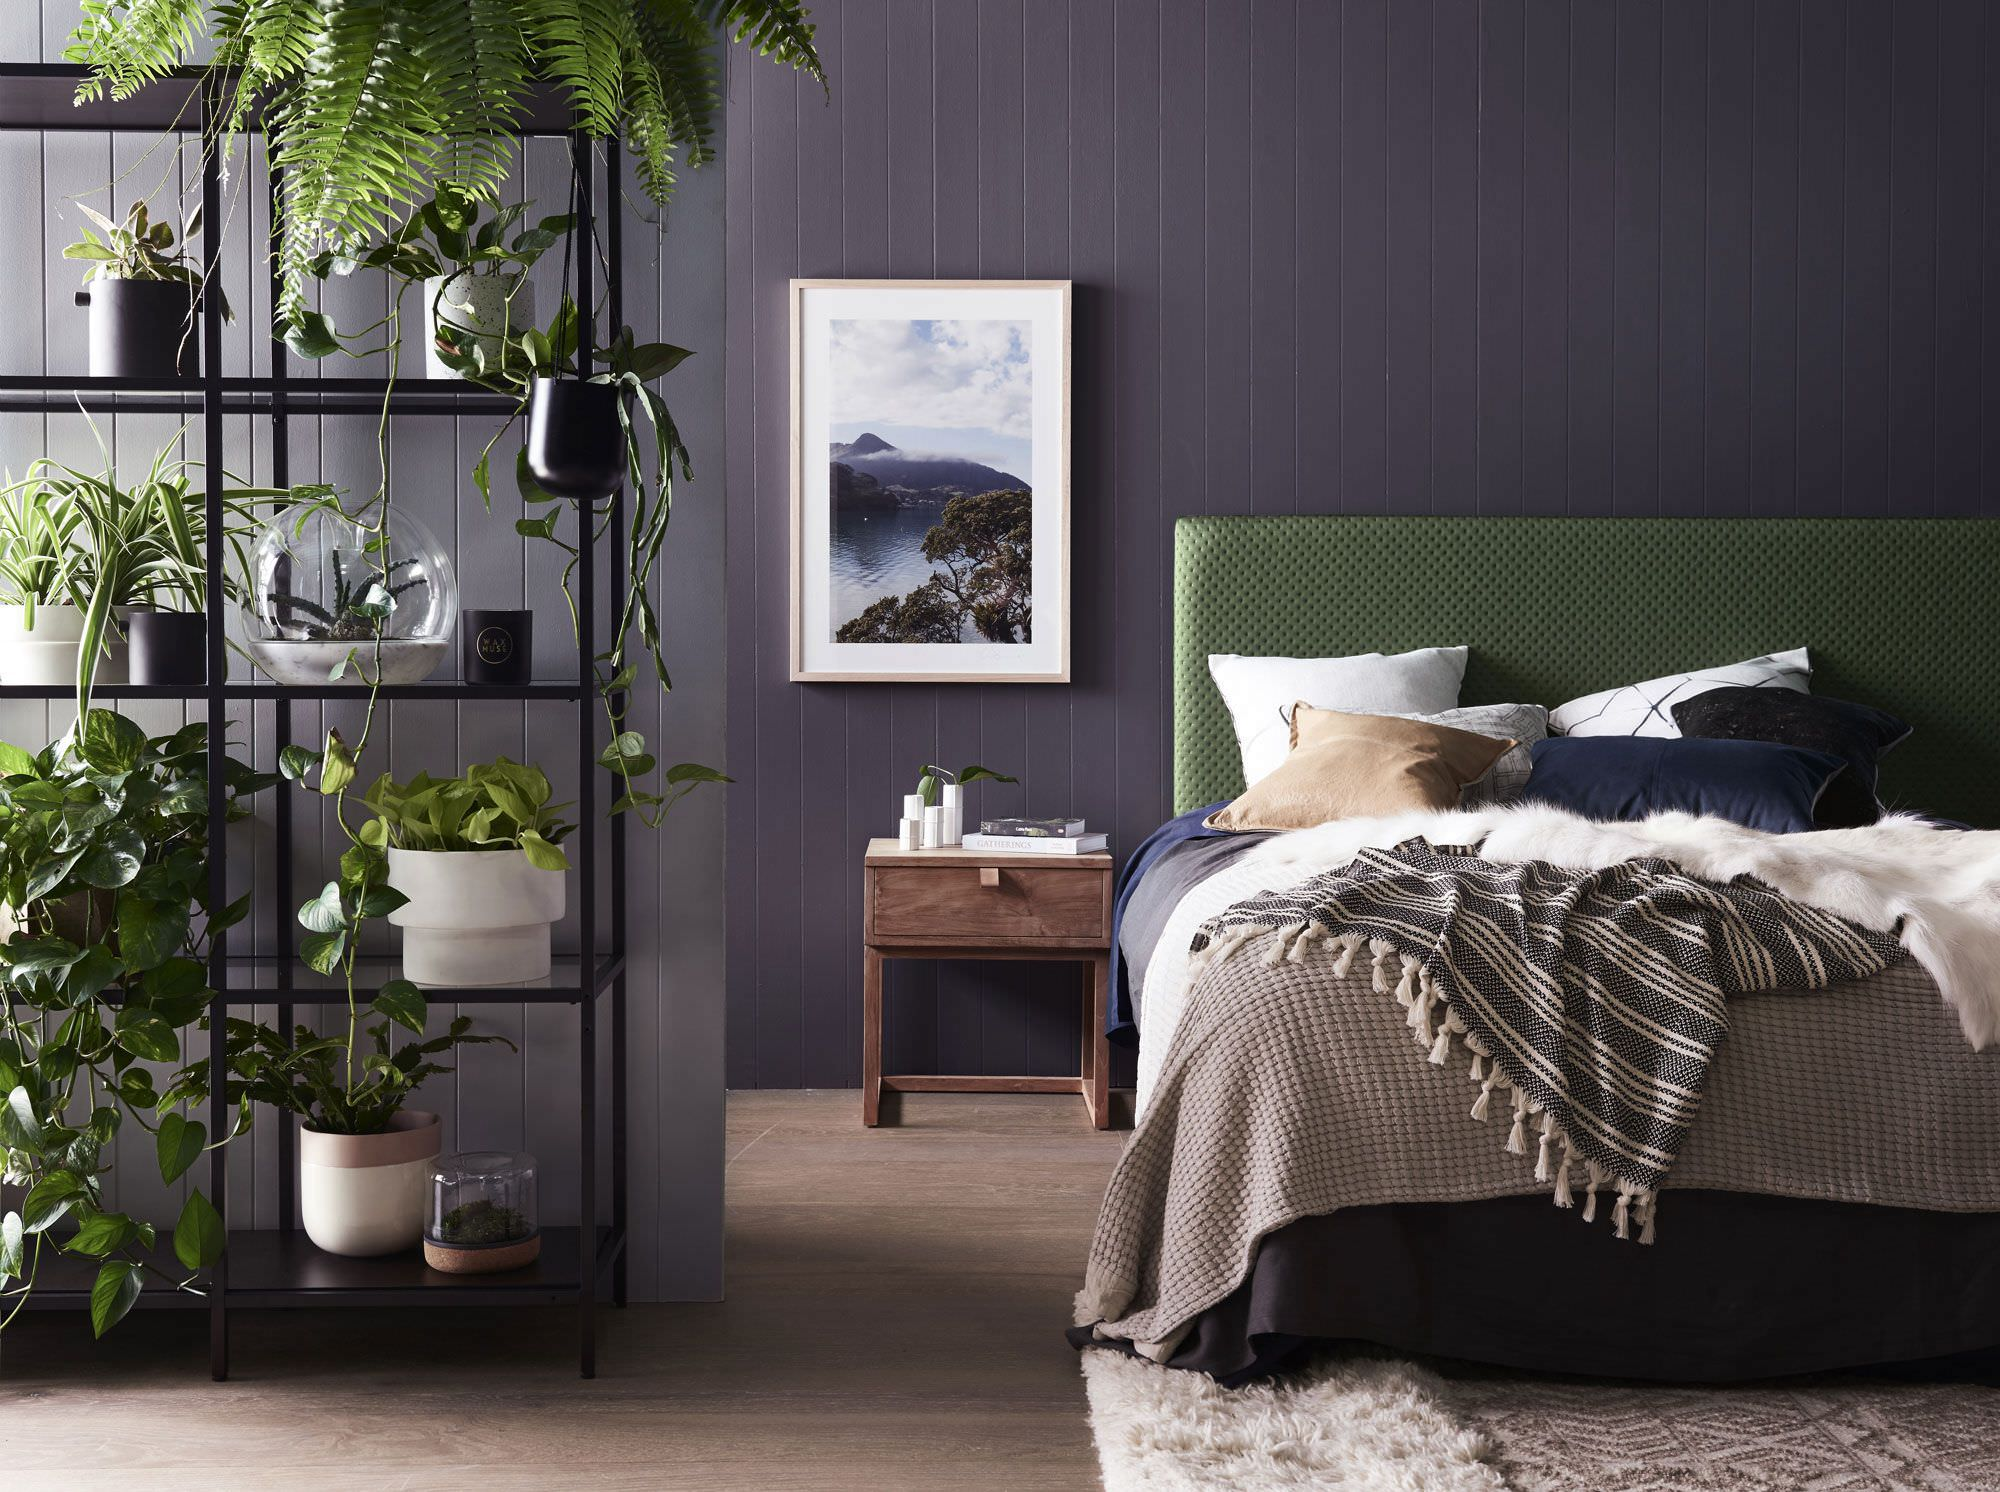 quelles seront les tendances d co 2019 pour sublimer vos meubles. Black Bedroom Furniture Sets. Home Design Ideas